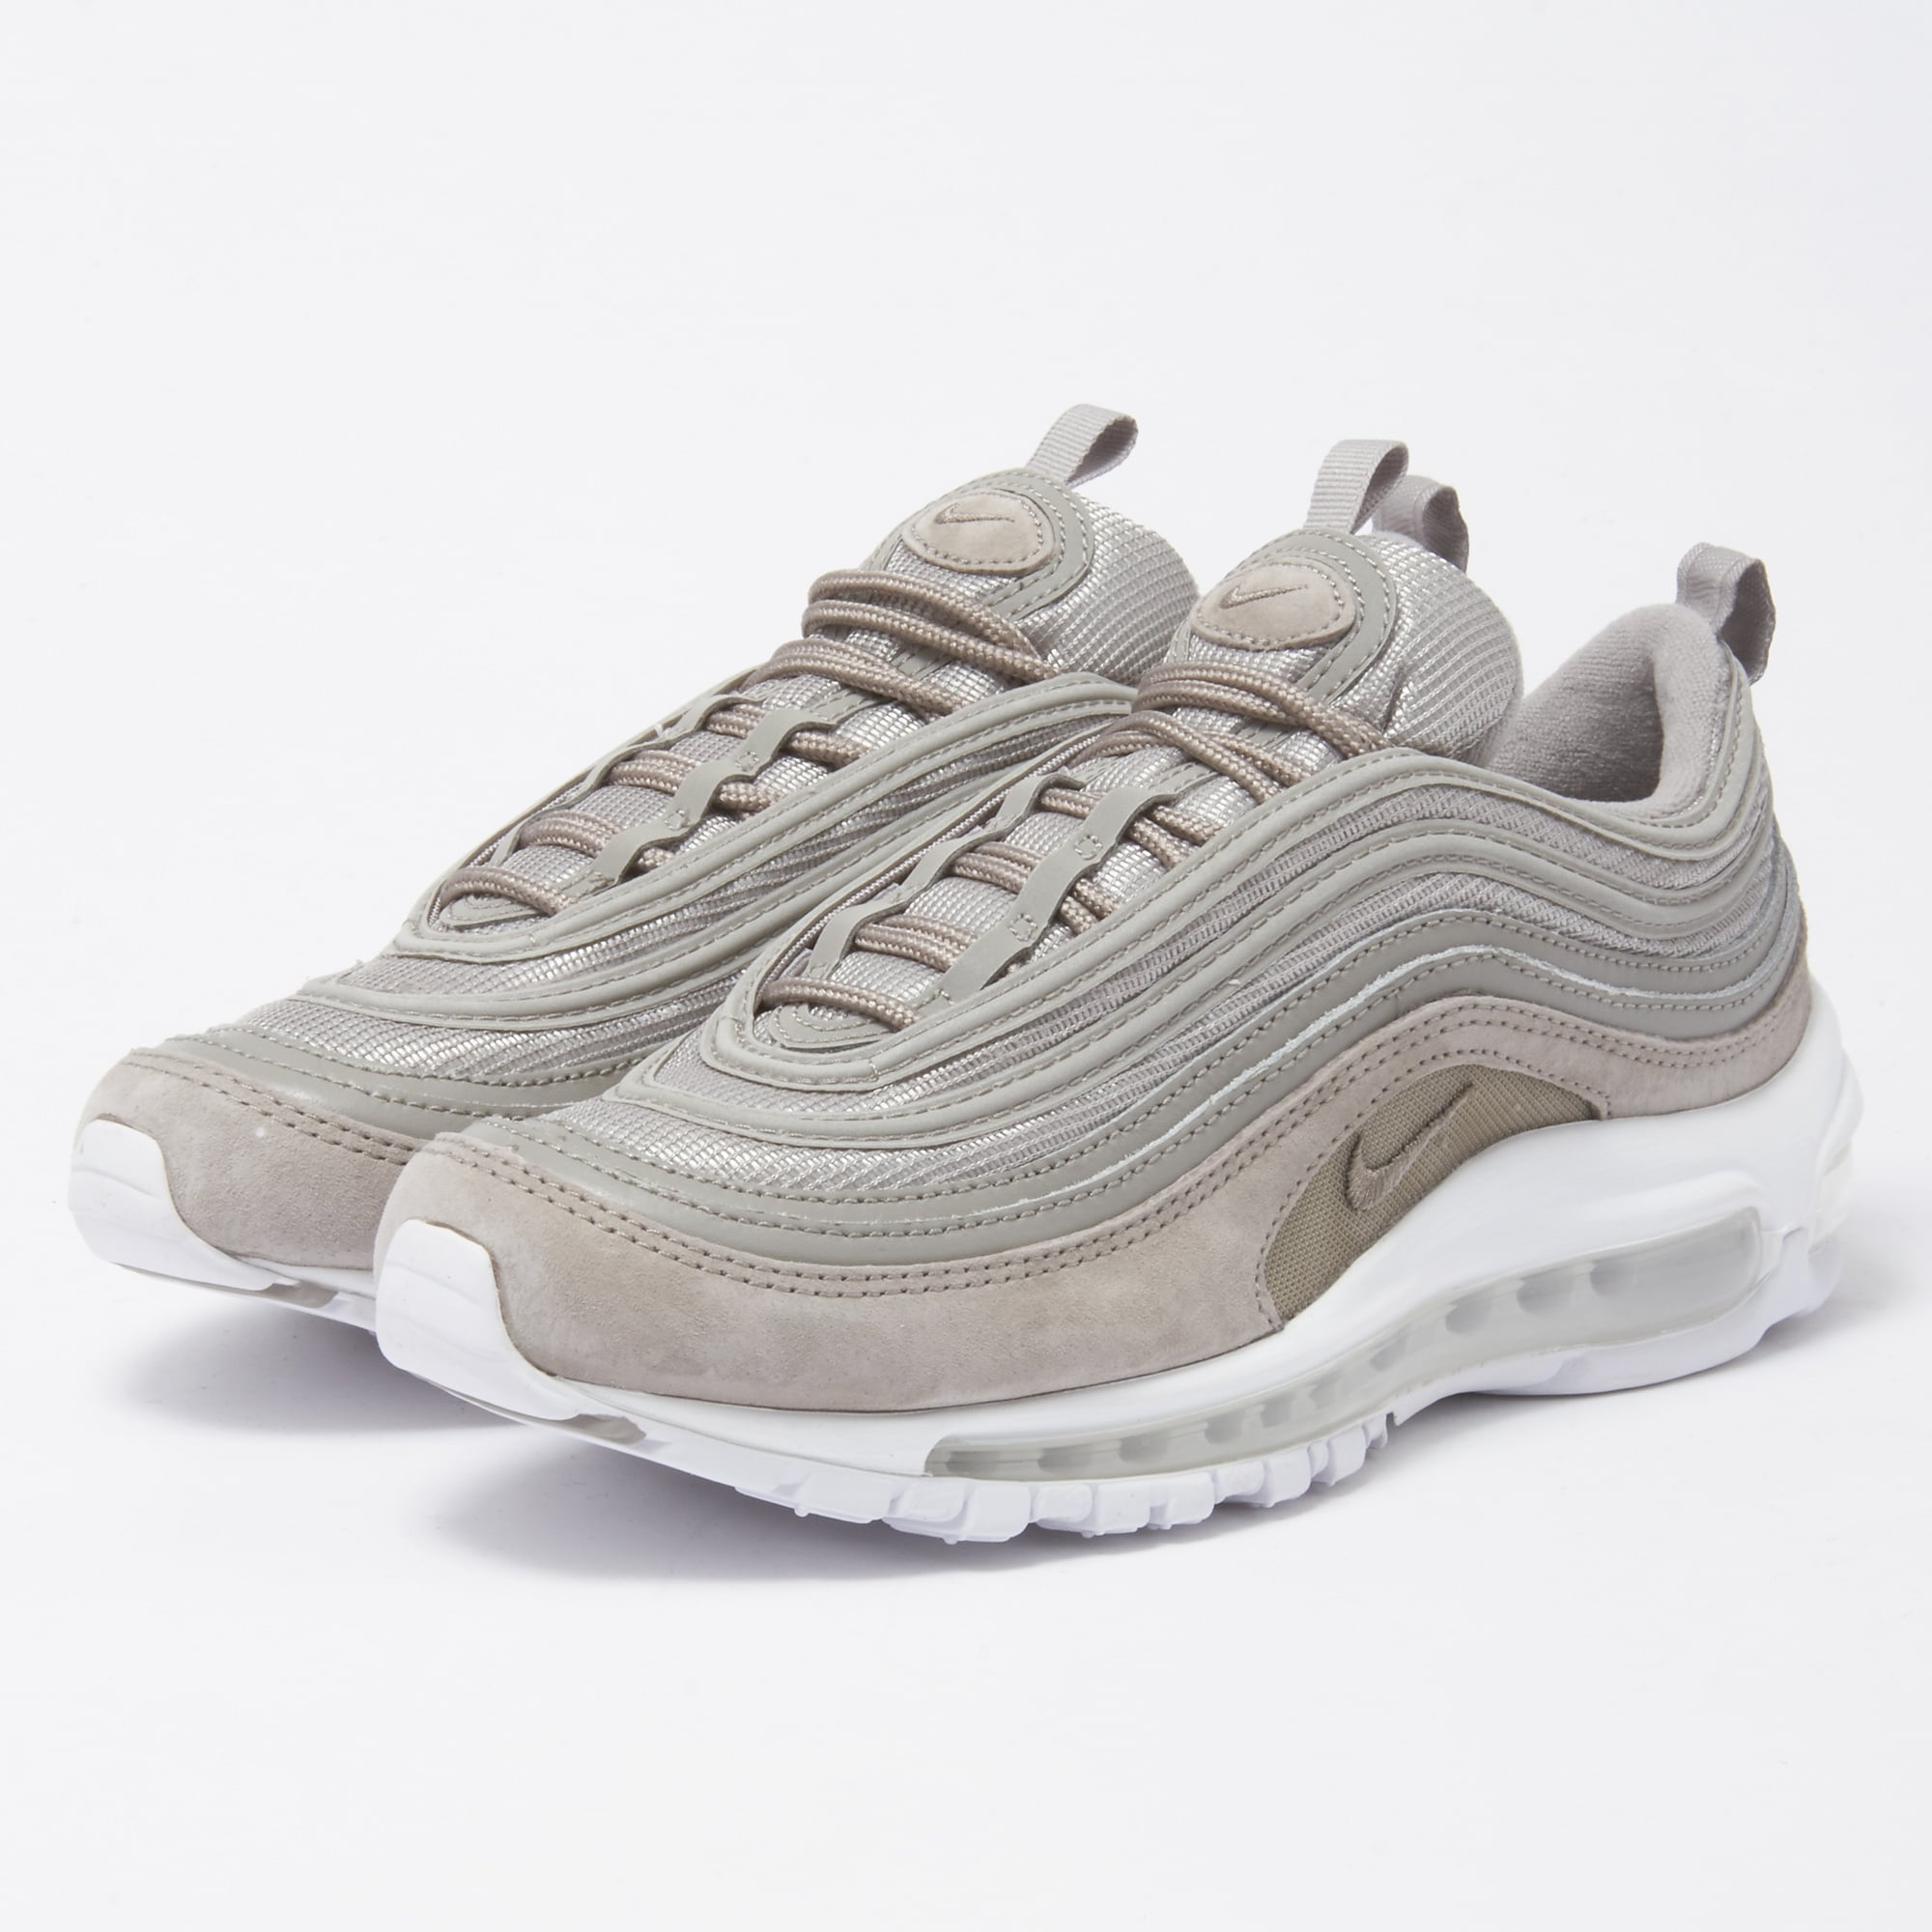 nike air max 97 cobblestone